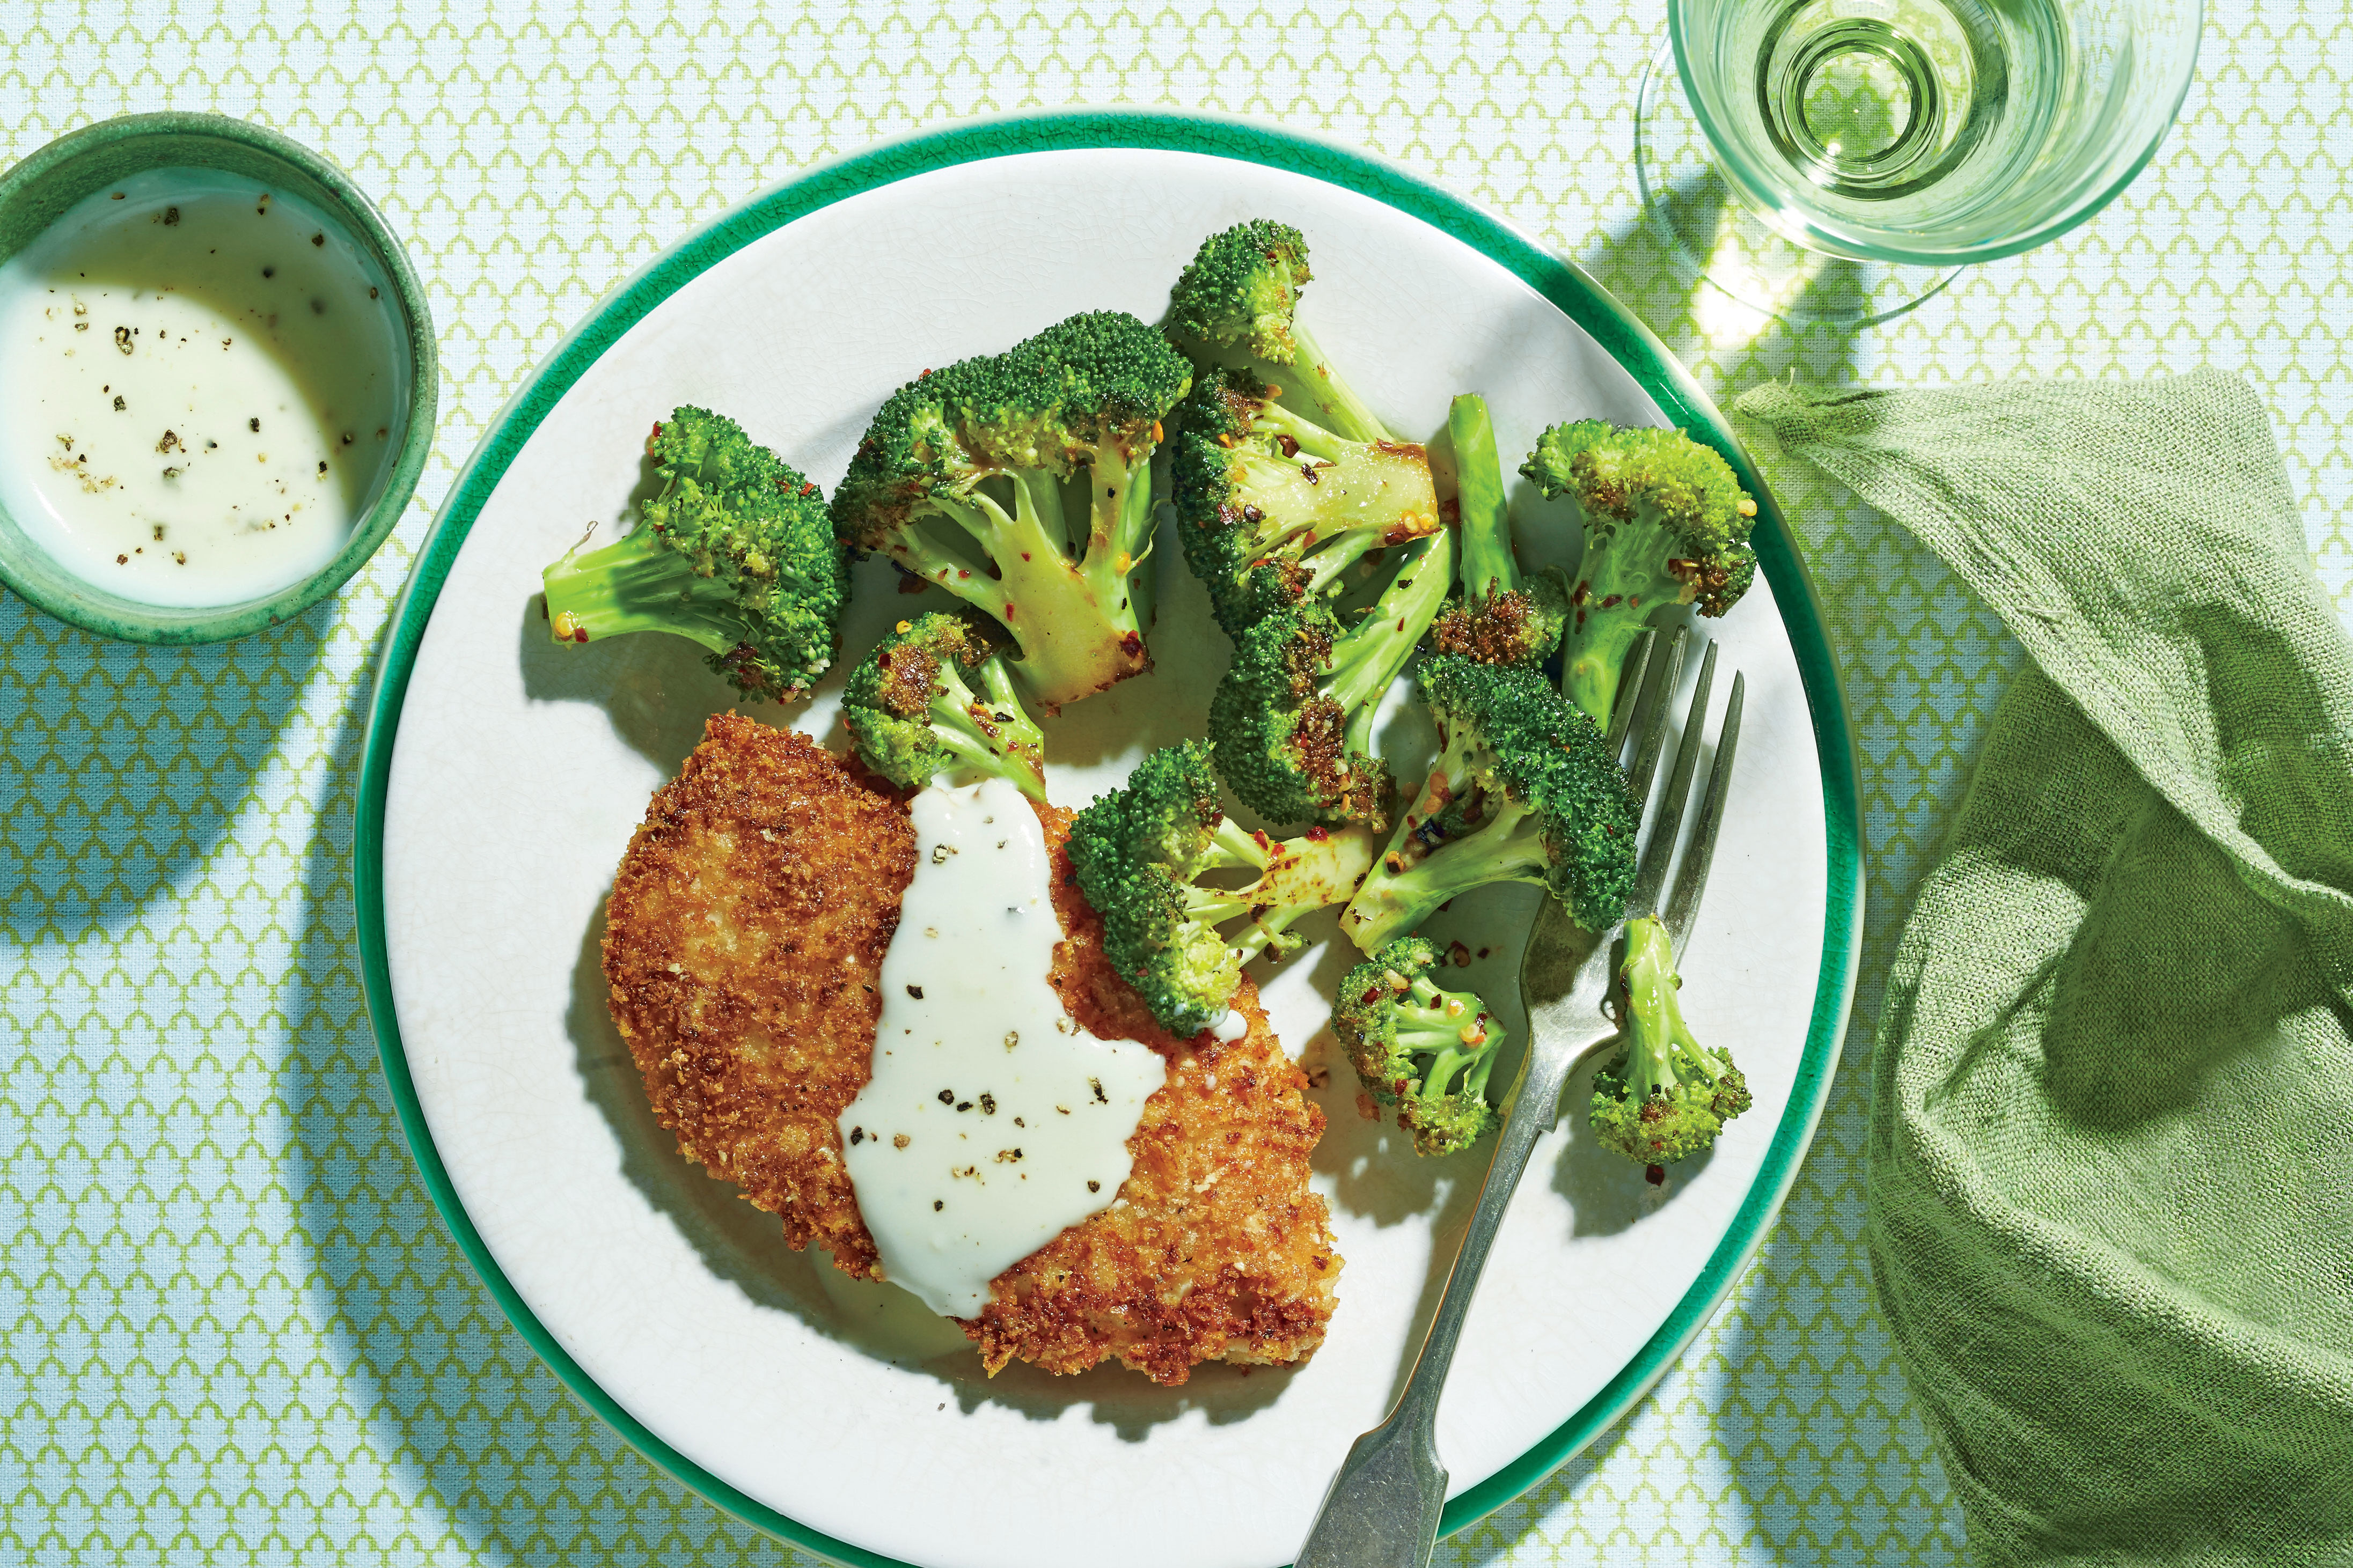 Crispy Oven-Fried Chicken Cutlets with Roasted Broccoli and Parmesan Cream Sauce Recipe